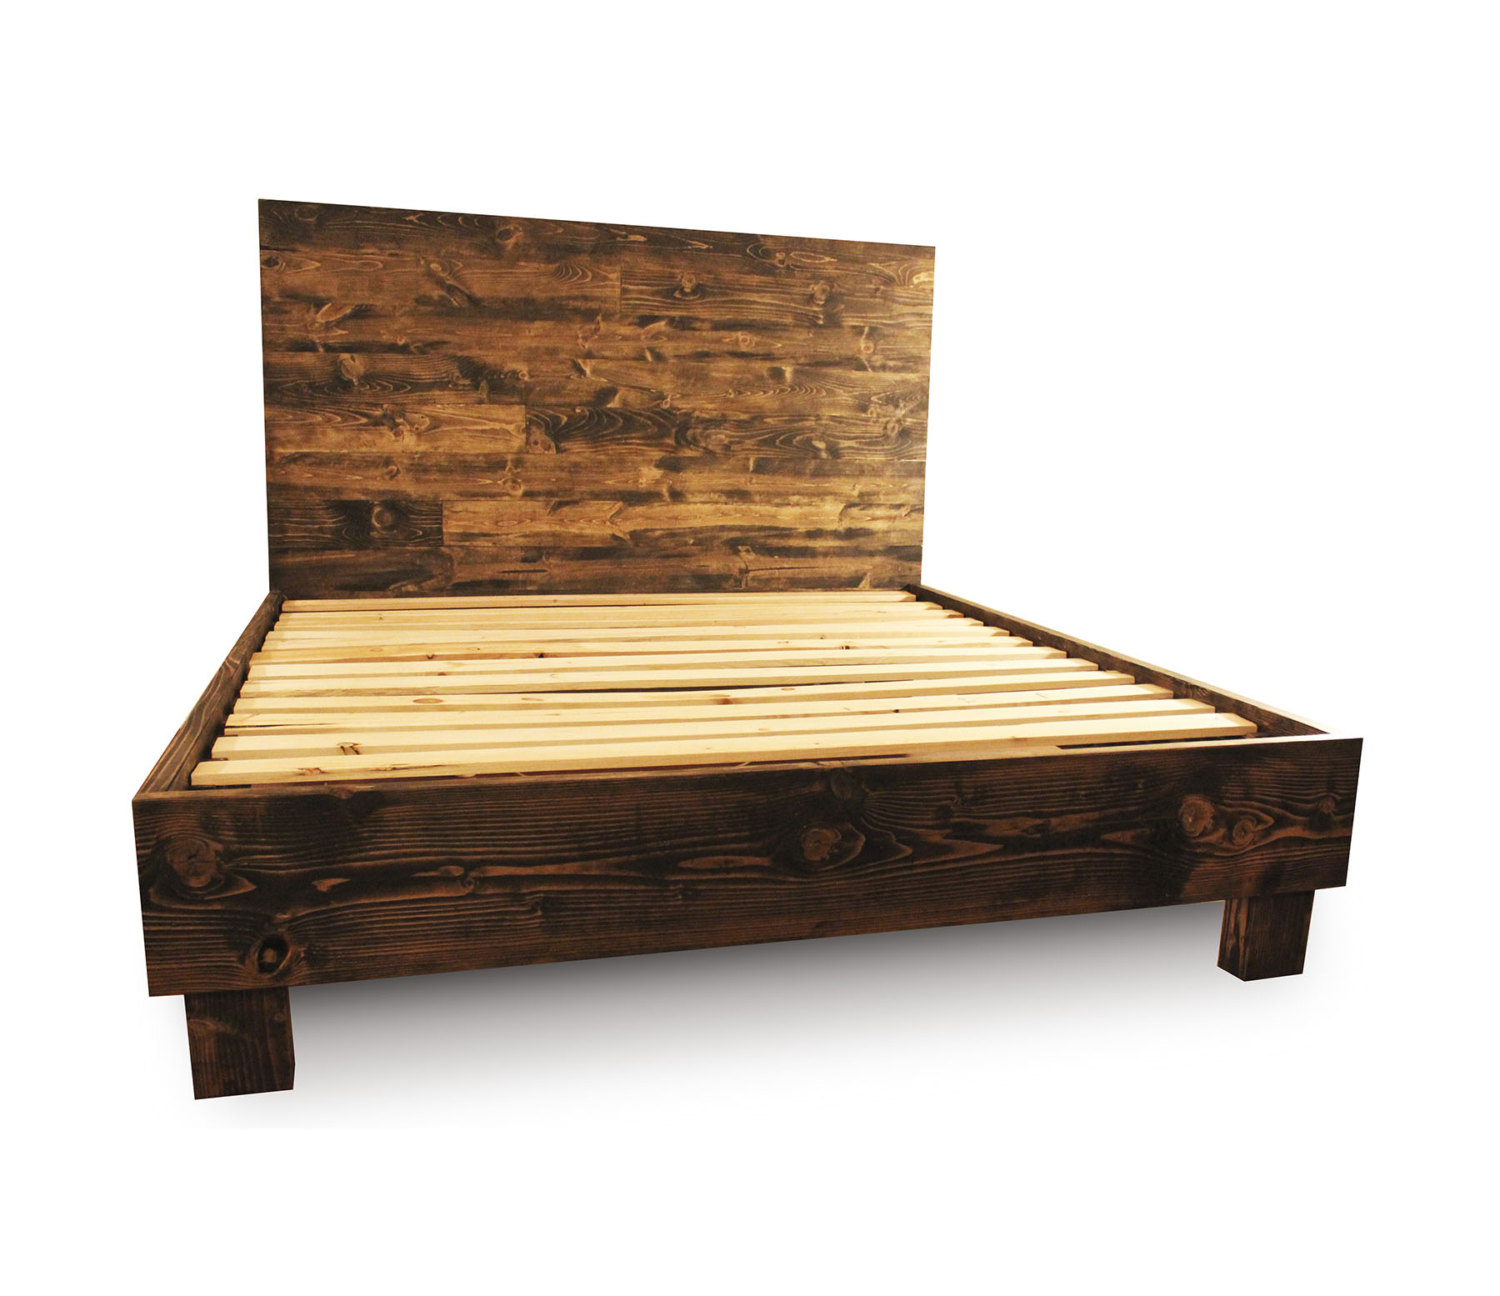 full size wooden bed frame with headboard rustic dark brown wooden bed frame with headboard and four FQIHSJN